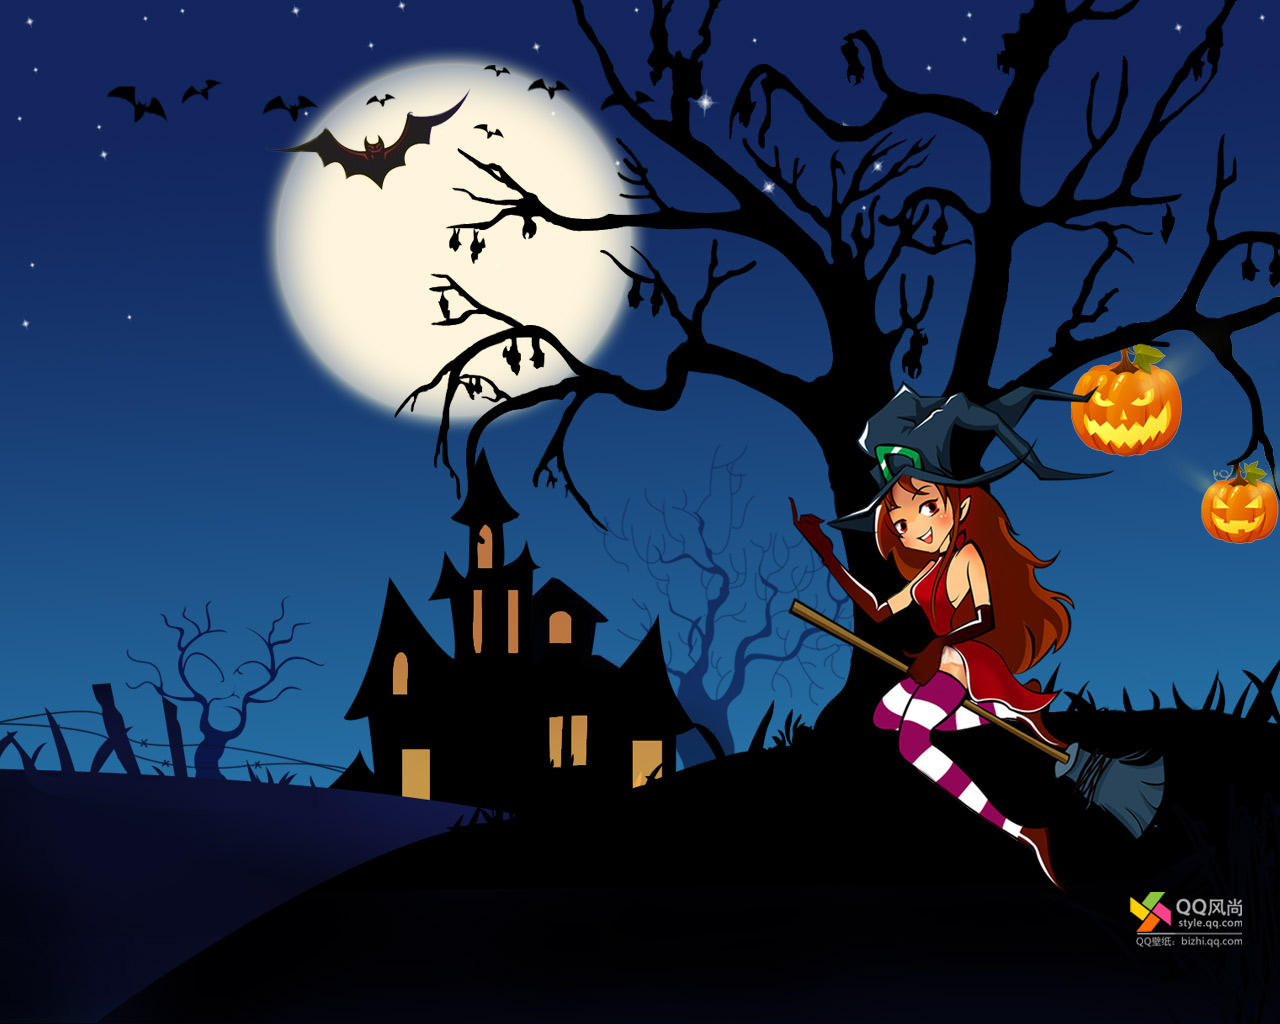 Witch wallpaper 1280x1024